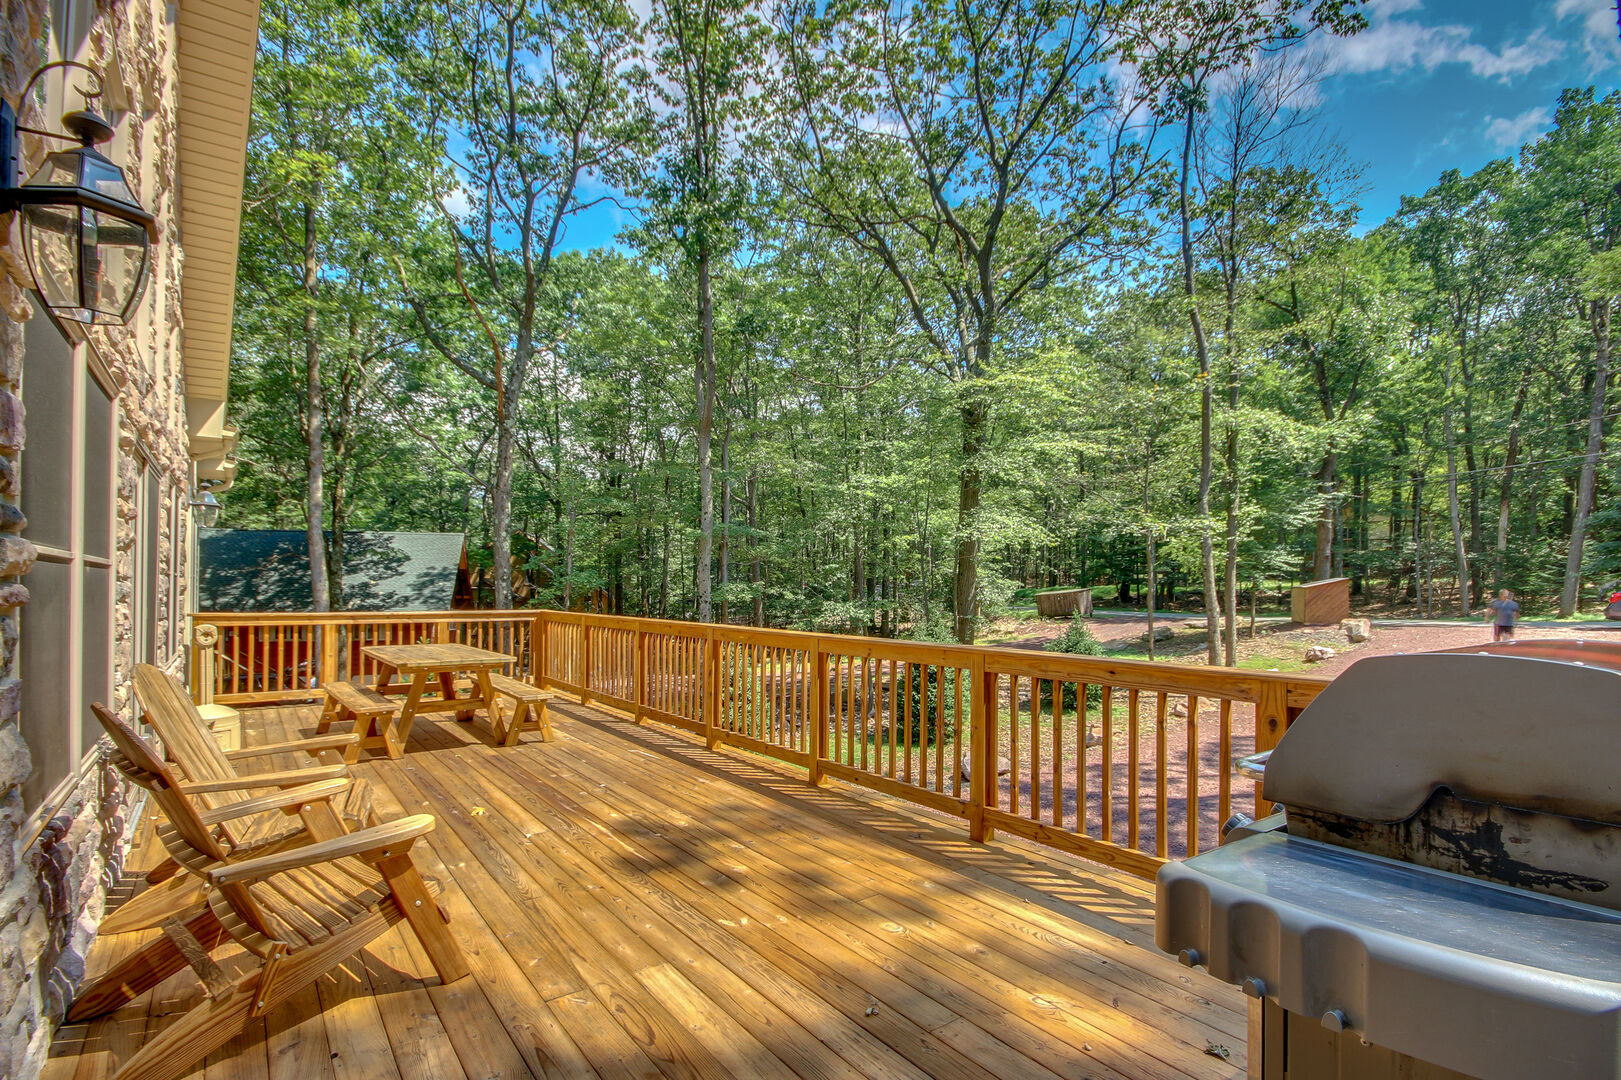 Front porch with picnic table, patio chairs, and grill overlooking  forest scenery.